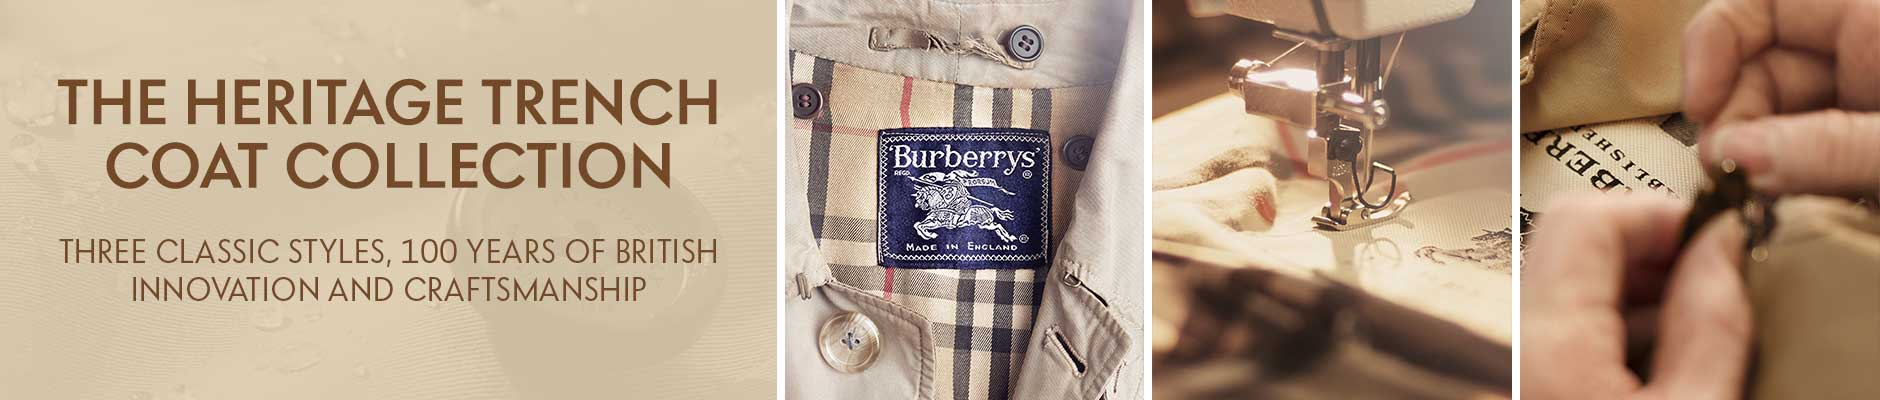 Burberry Heritage Trench Coat Collection